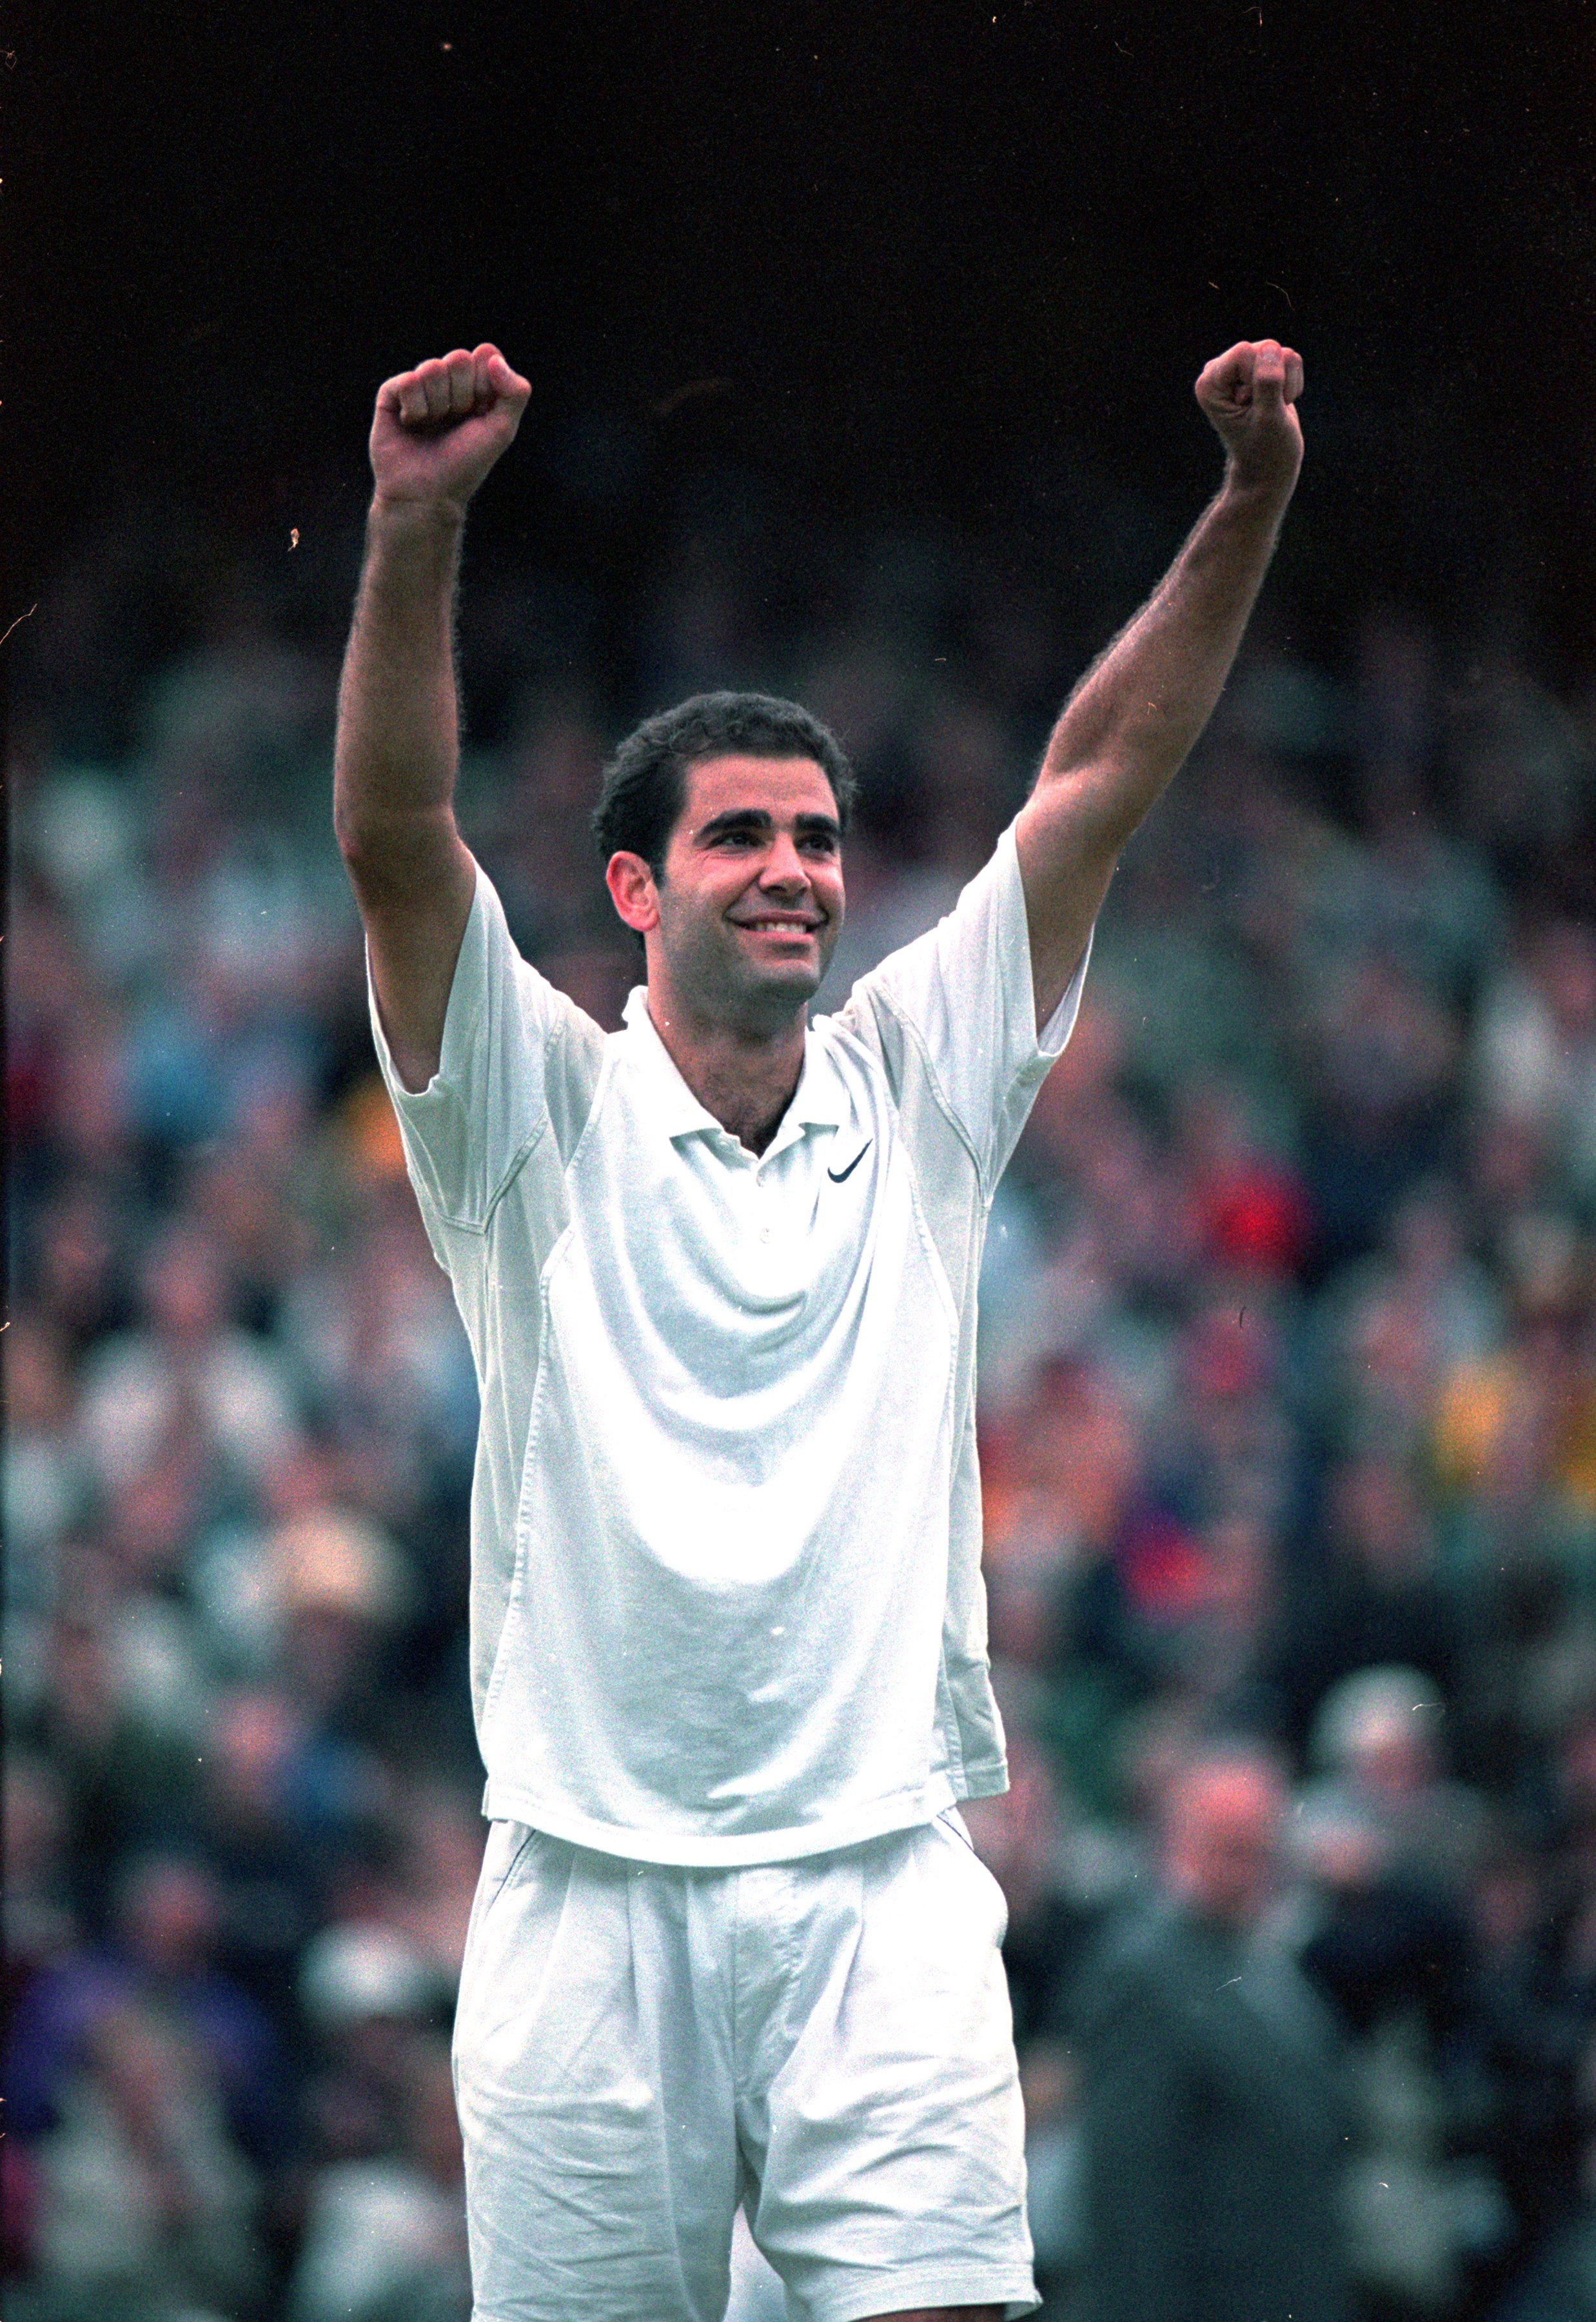 9 Jul 2000:  Pete Sampras of the USA celebrates victory in the mens final against Patrick Rafter of Australia at the Wimbledon Lawn Tennis Championship at the All England Lawn Tennis and Croquet Club, Wimbledon, London. Sampras won in four sets to claima